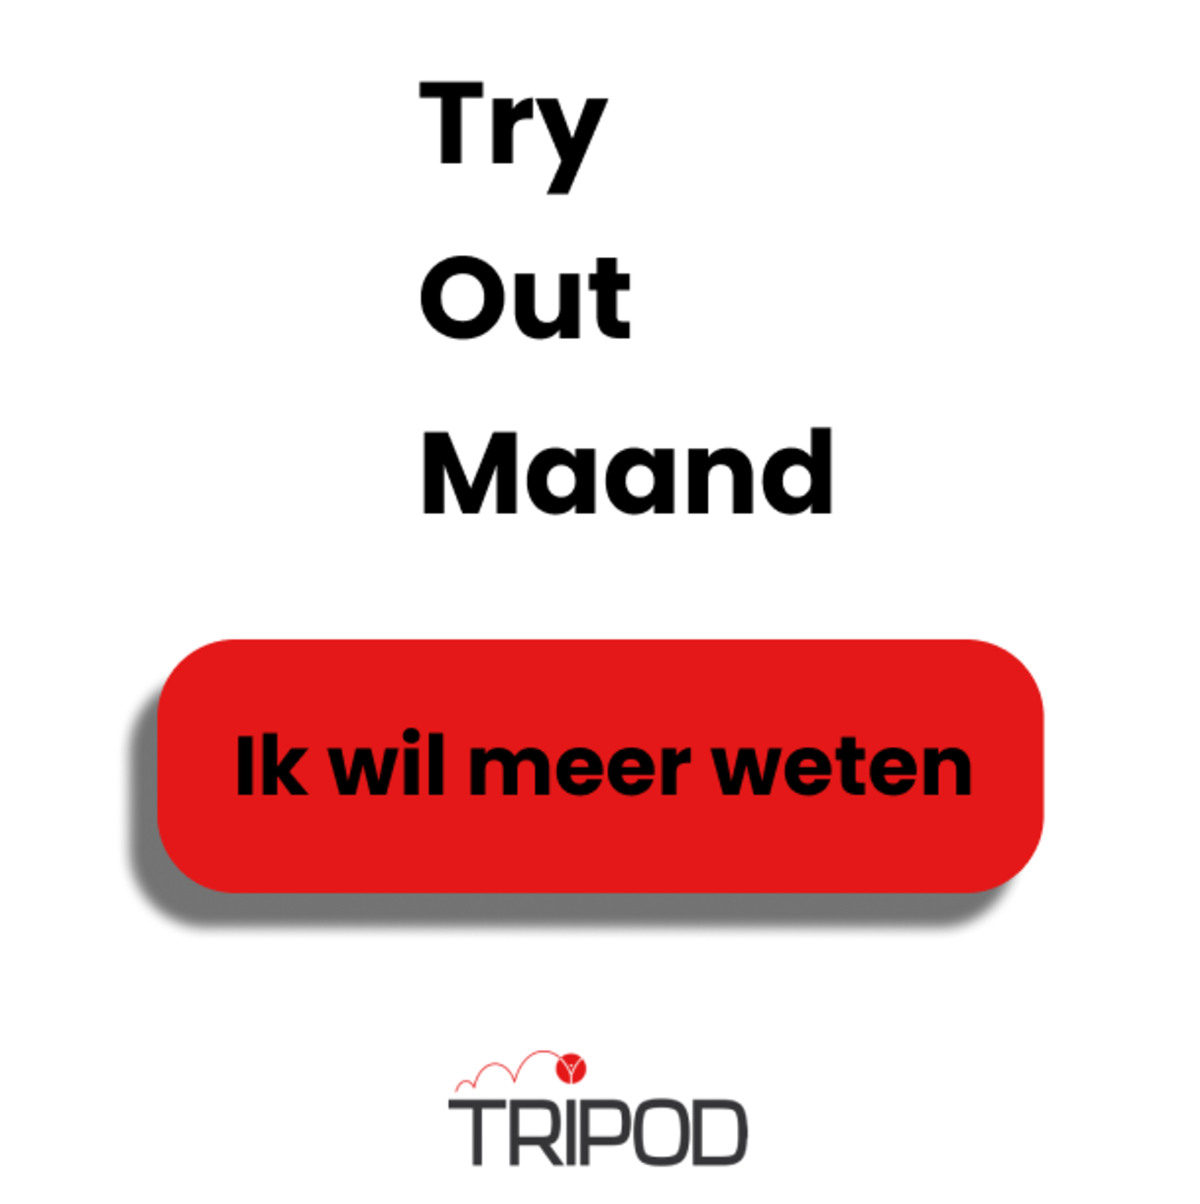 Tripod's Try Out Maand